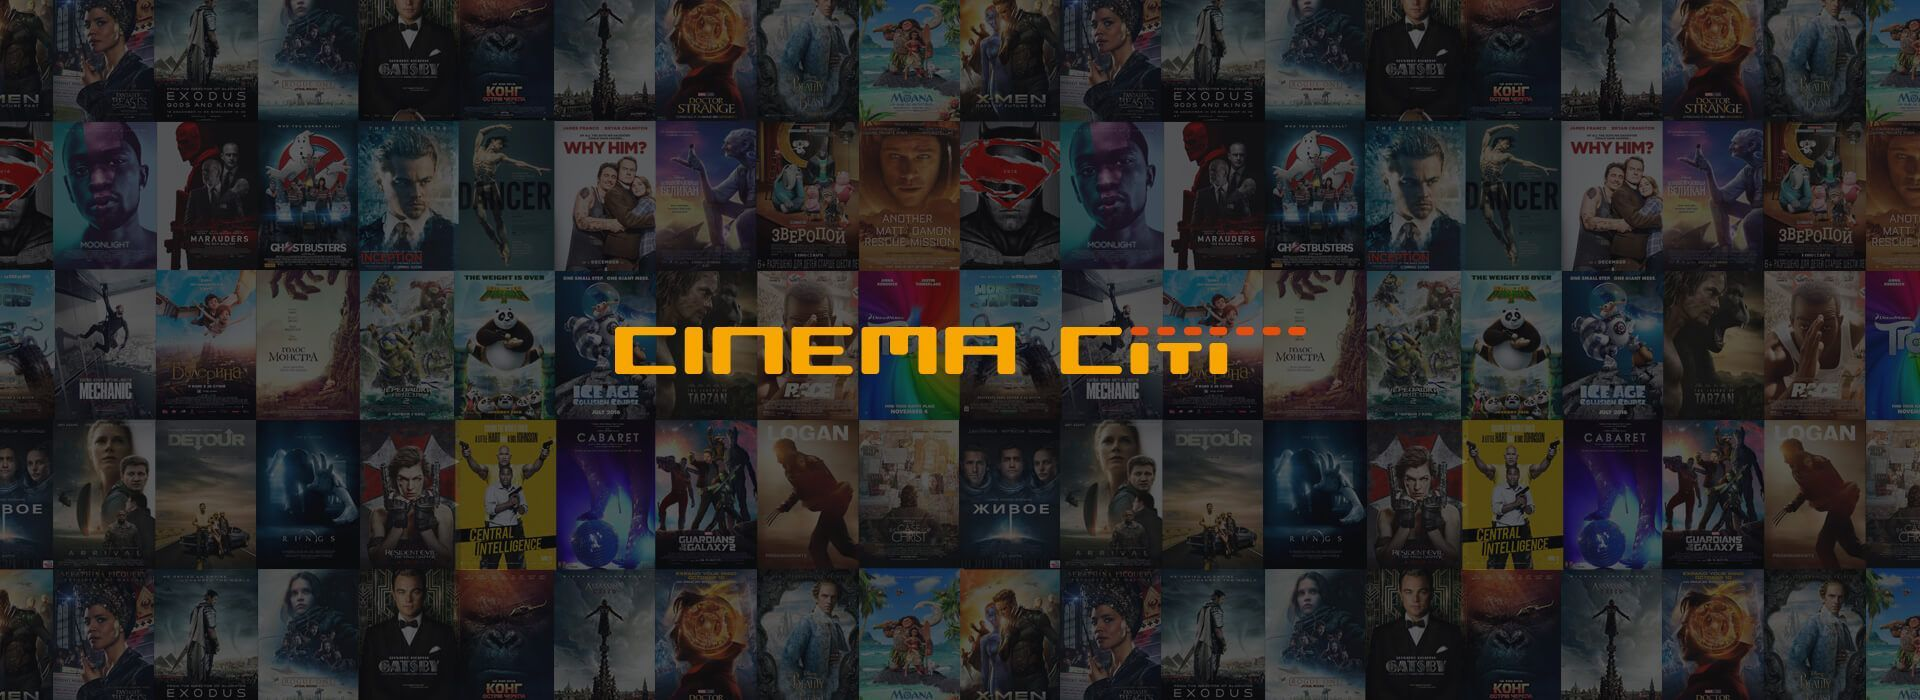 Сайт сети кинотеатров Cinema Citi